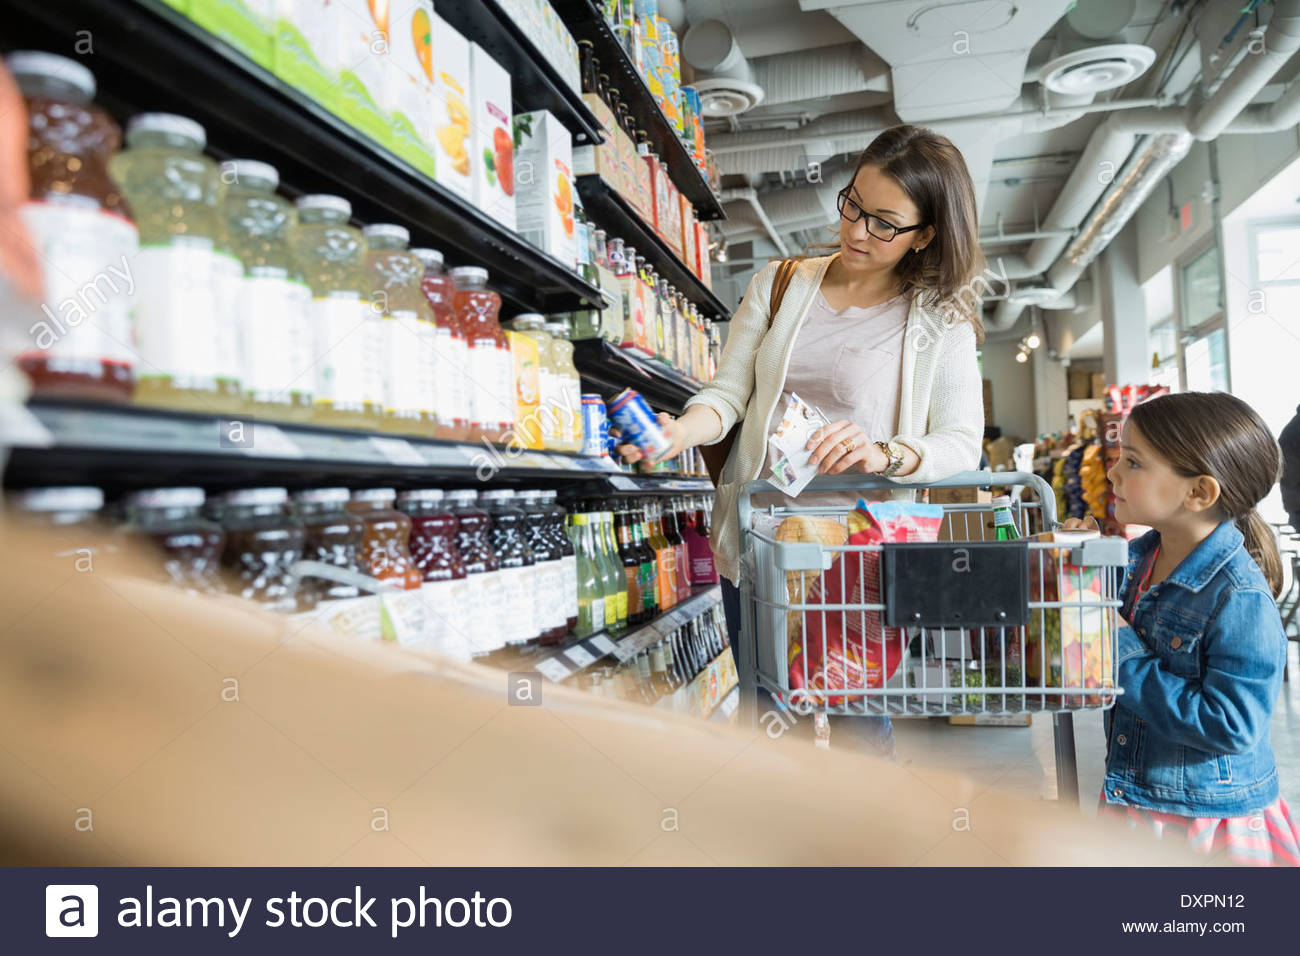 Mother and daughter shopping in market - Stock Image